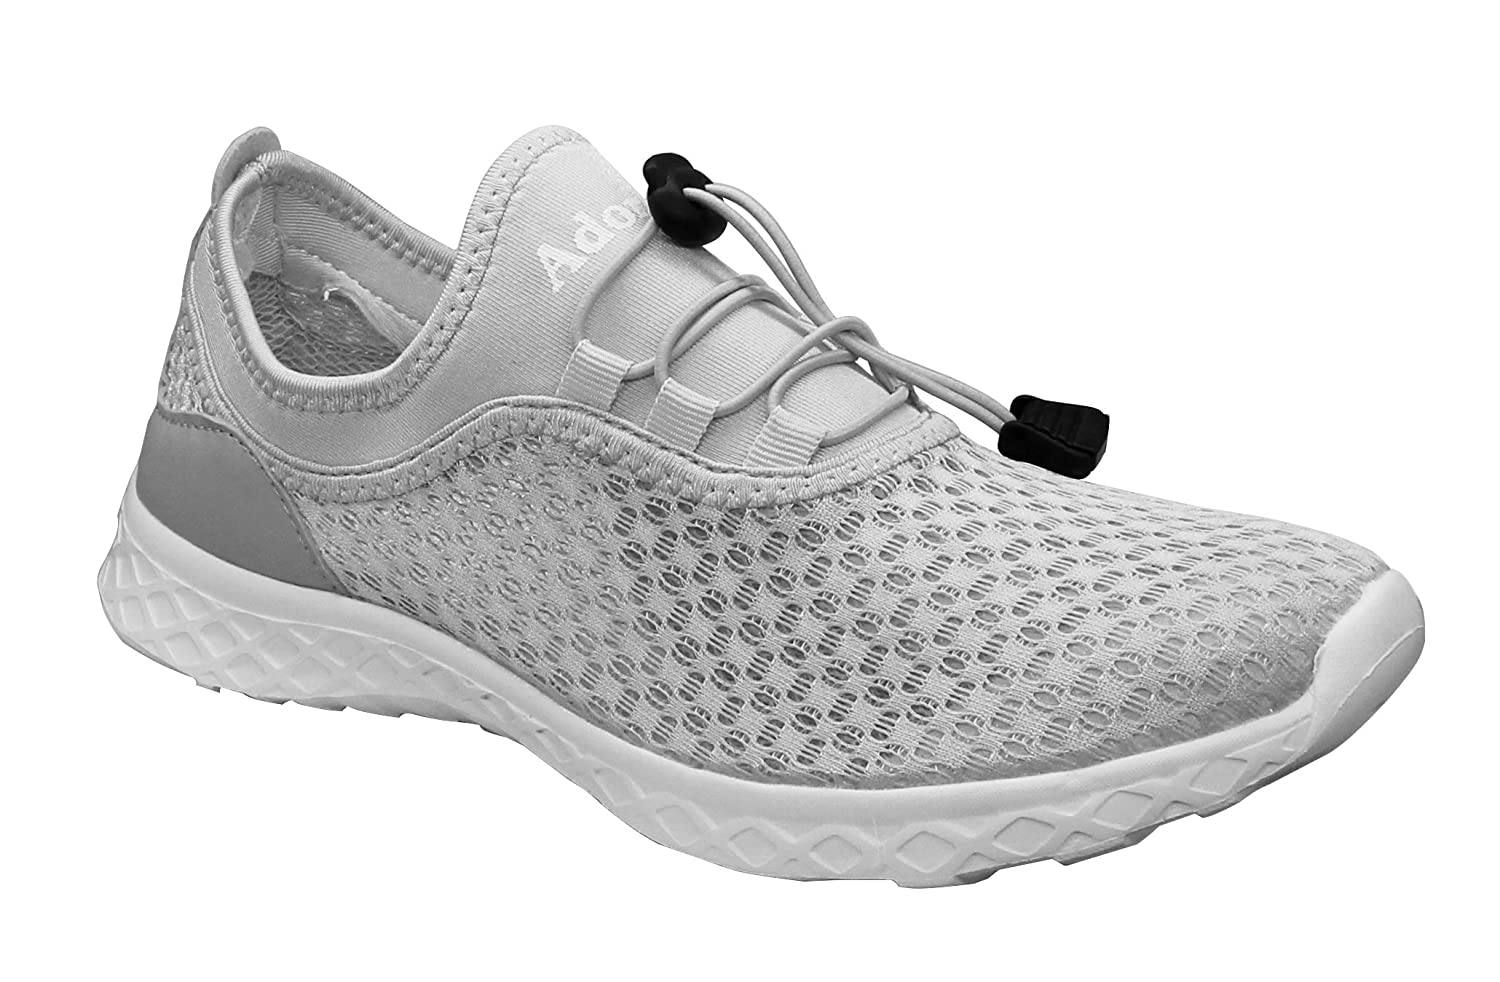 Adorllya Water Shoes for Women Men Mesh Aqua Shoes Slip on Hiking Swim Shoes